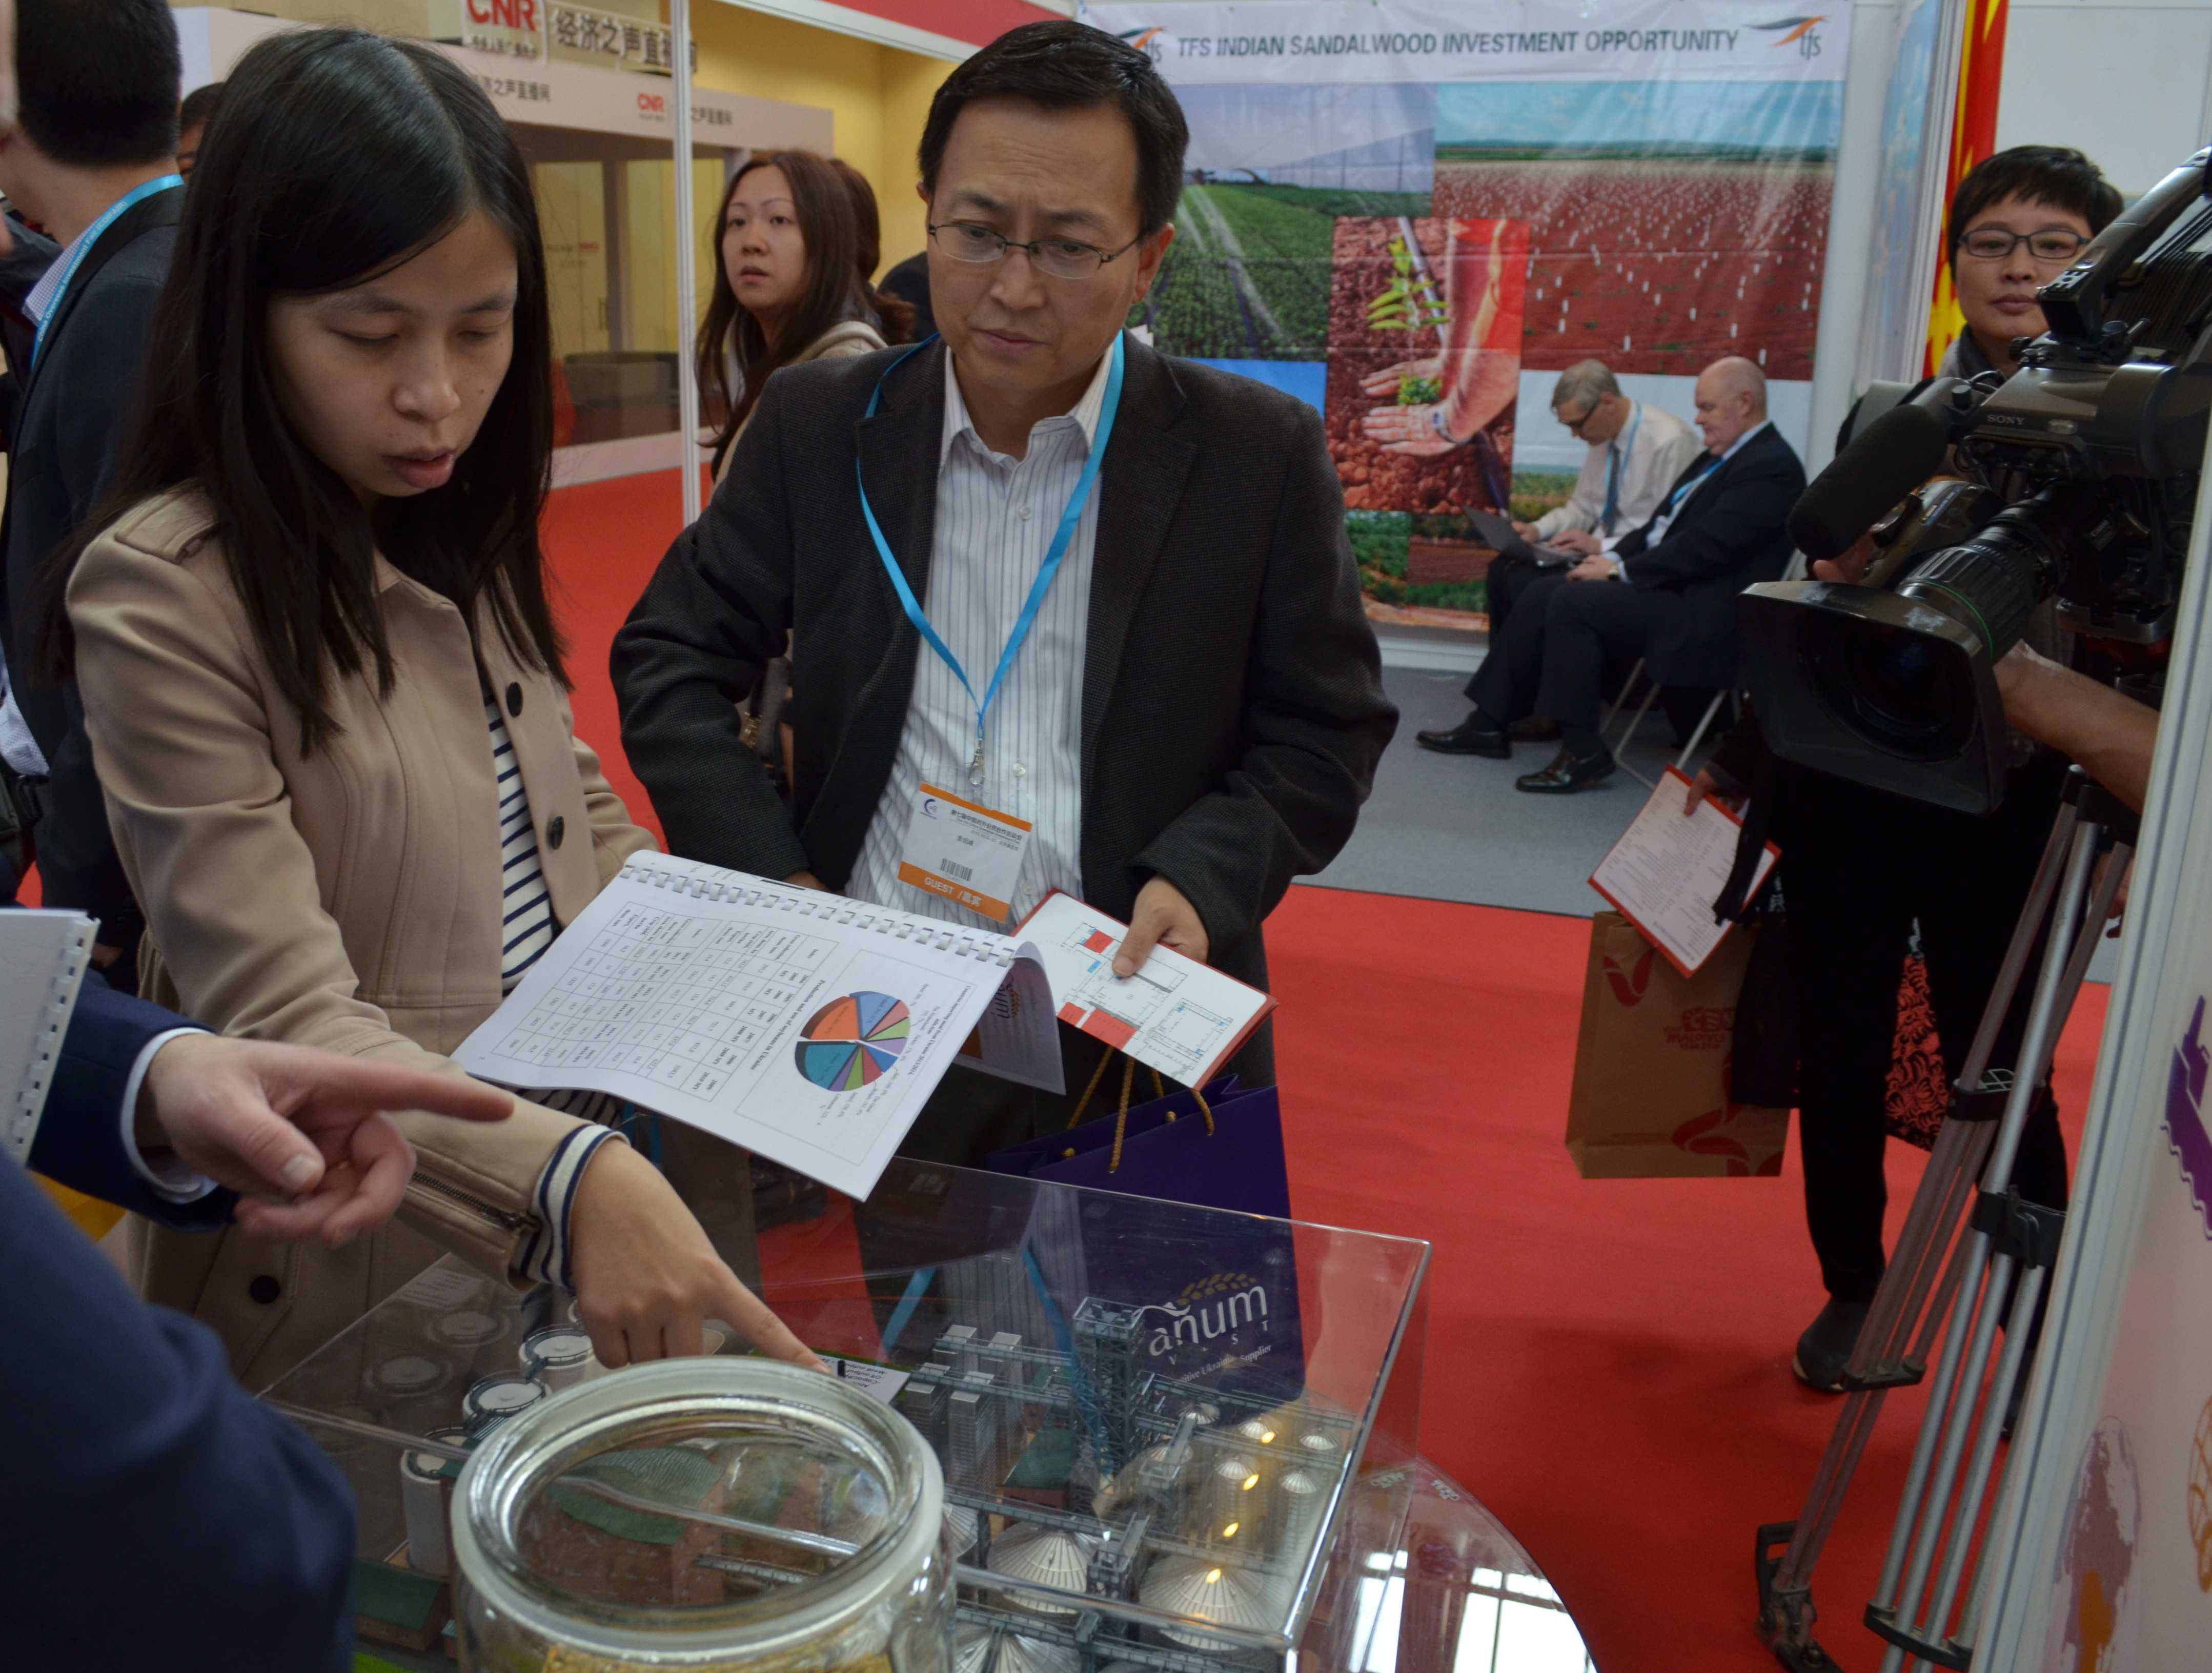 Ukrainian business was presented at the Investment Fair in Beijing